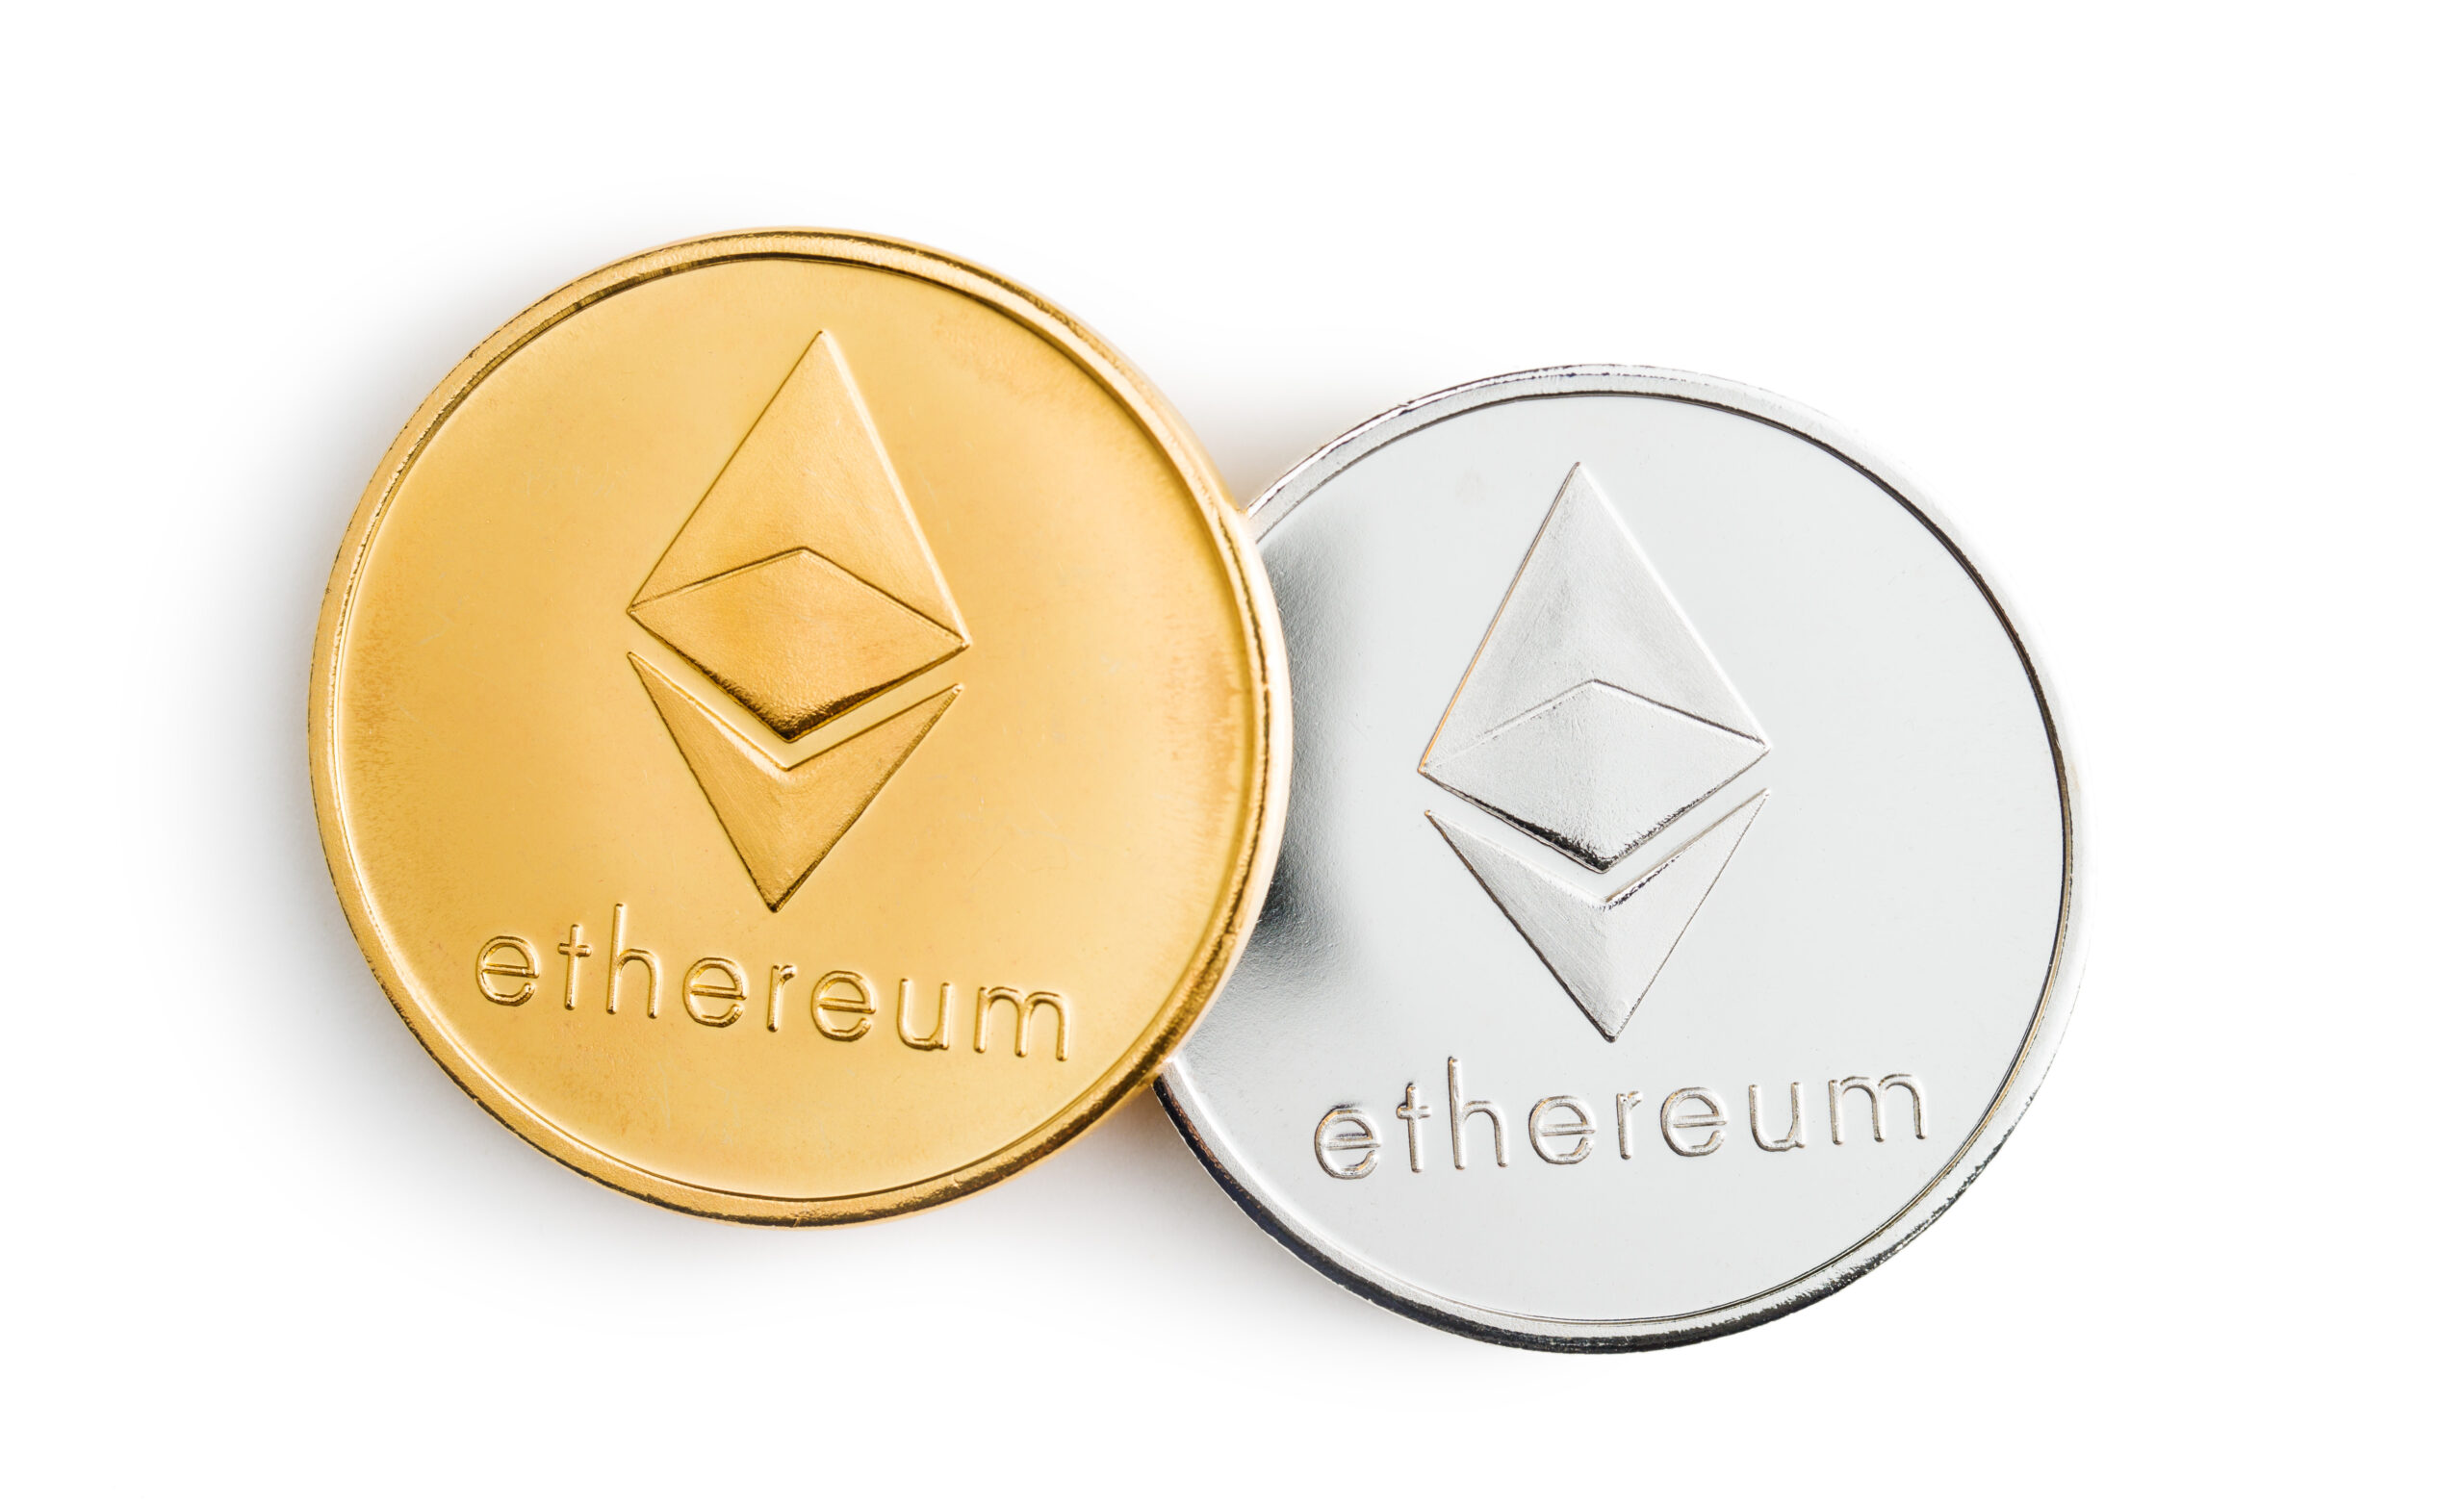 Ethereum Price Analysis for June 23th - ETH May Go On Growing